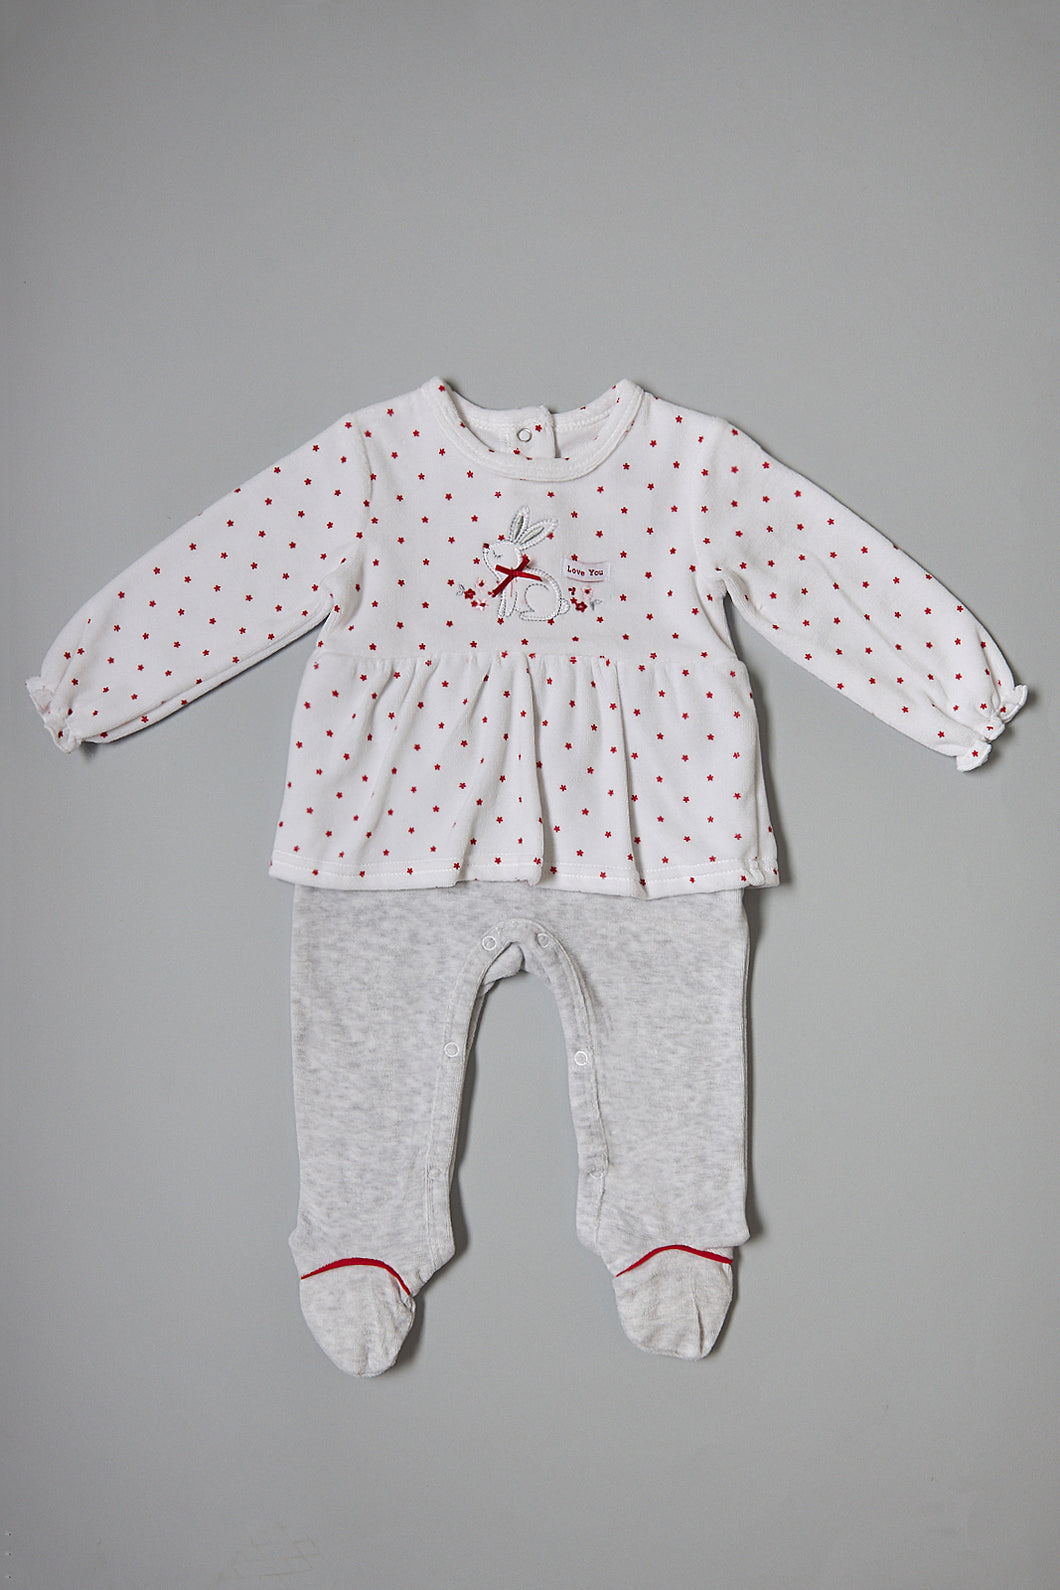 White/Grey Star Printed Dressy Velour Sleepsuit With bow